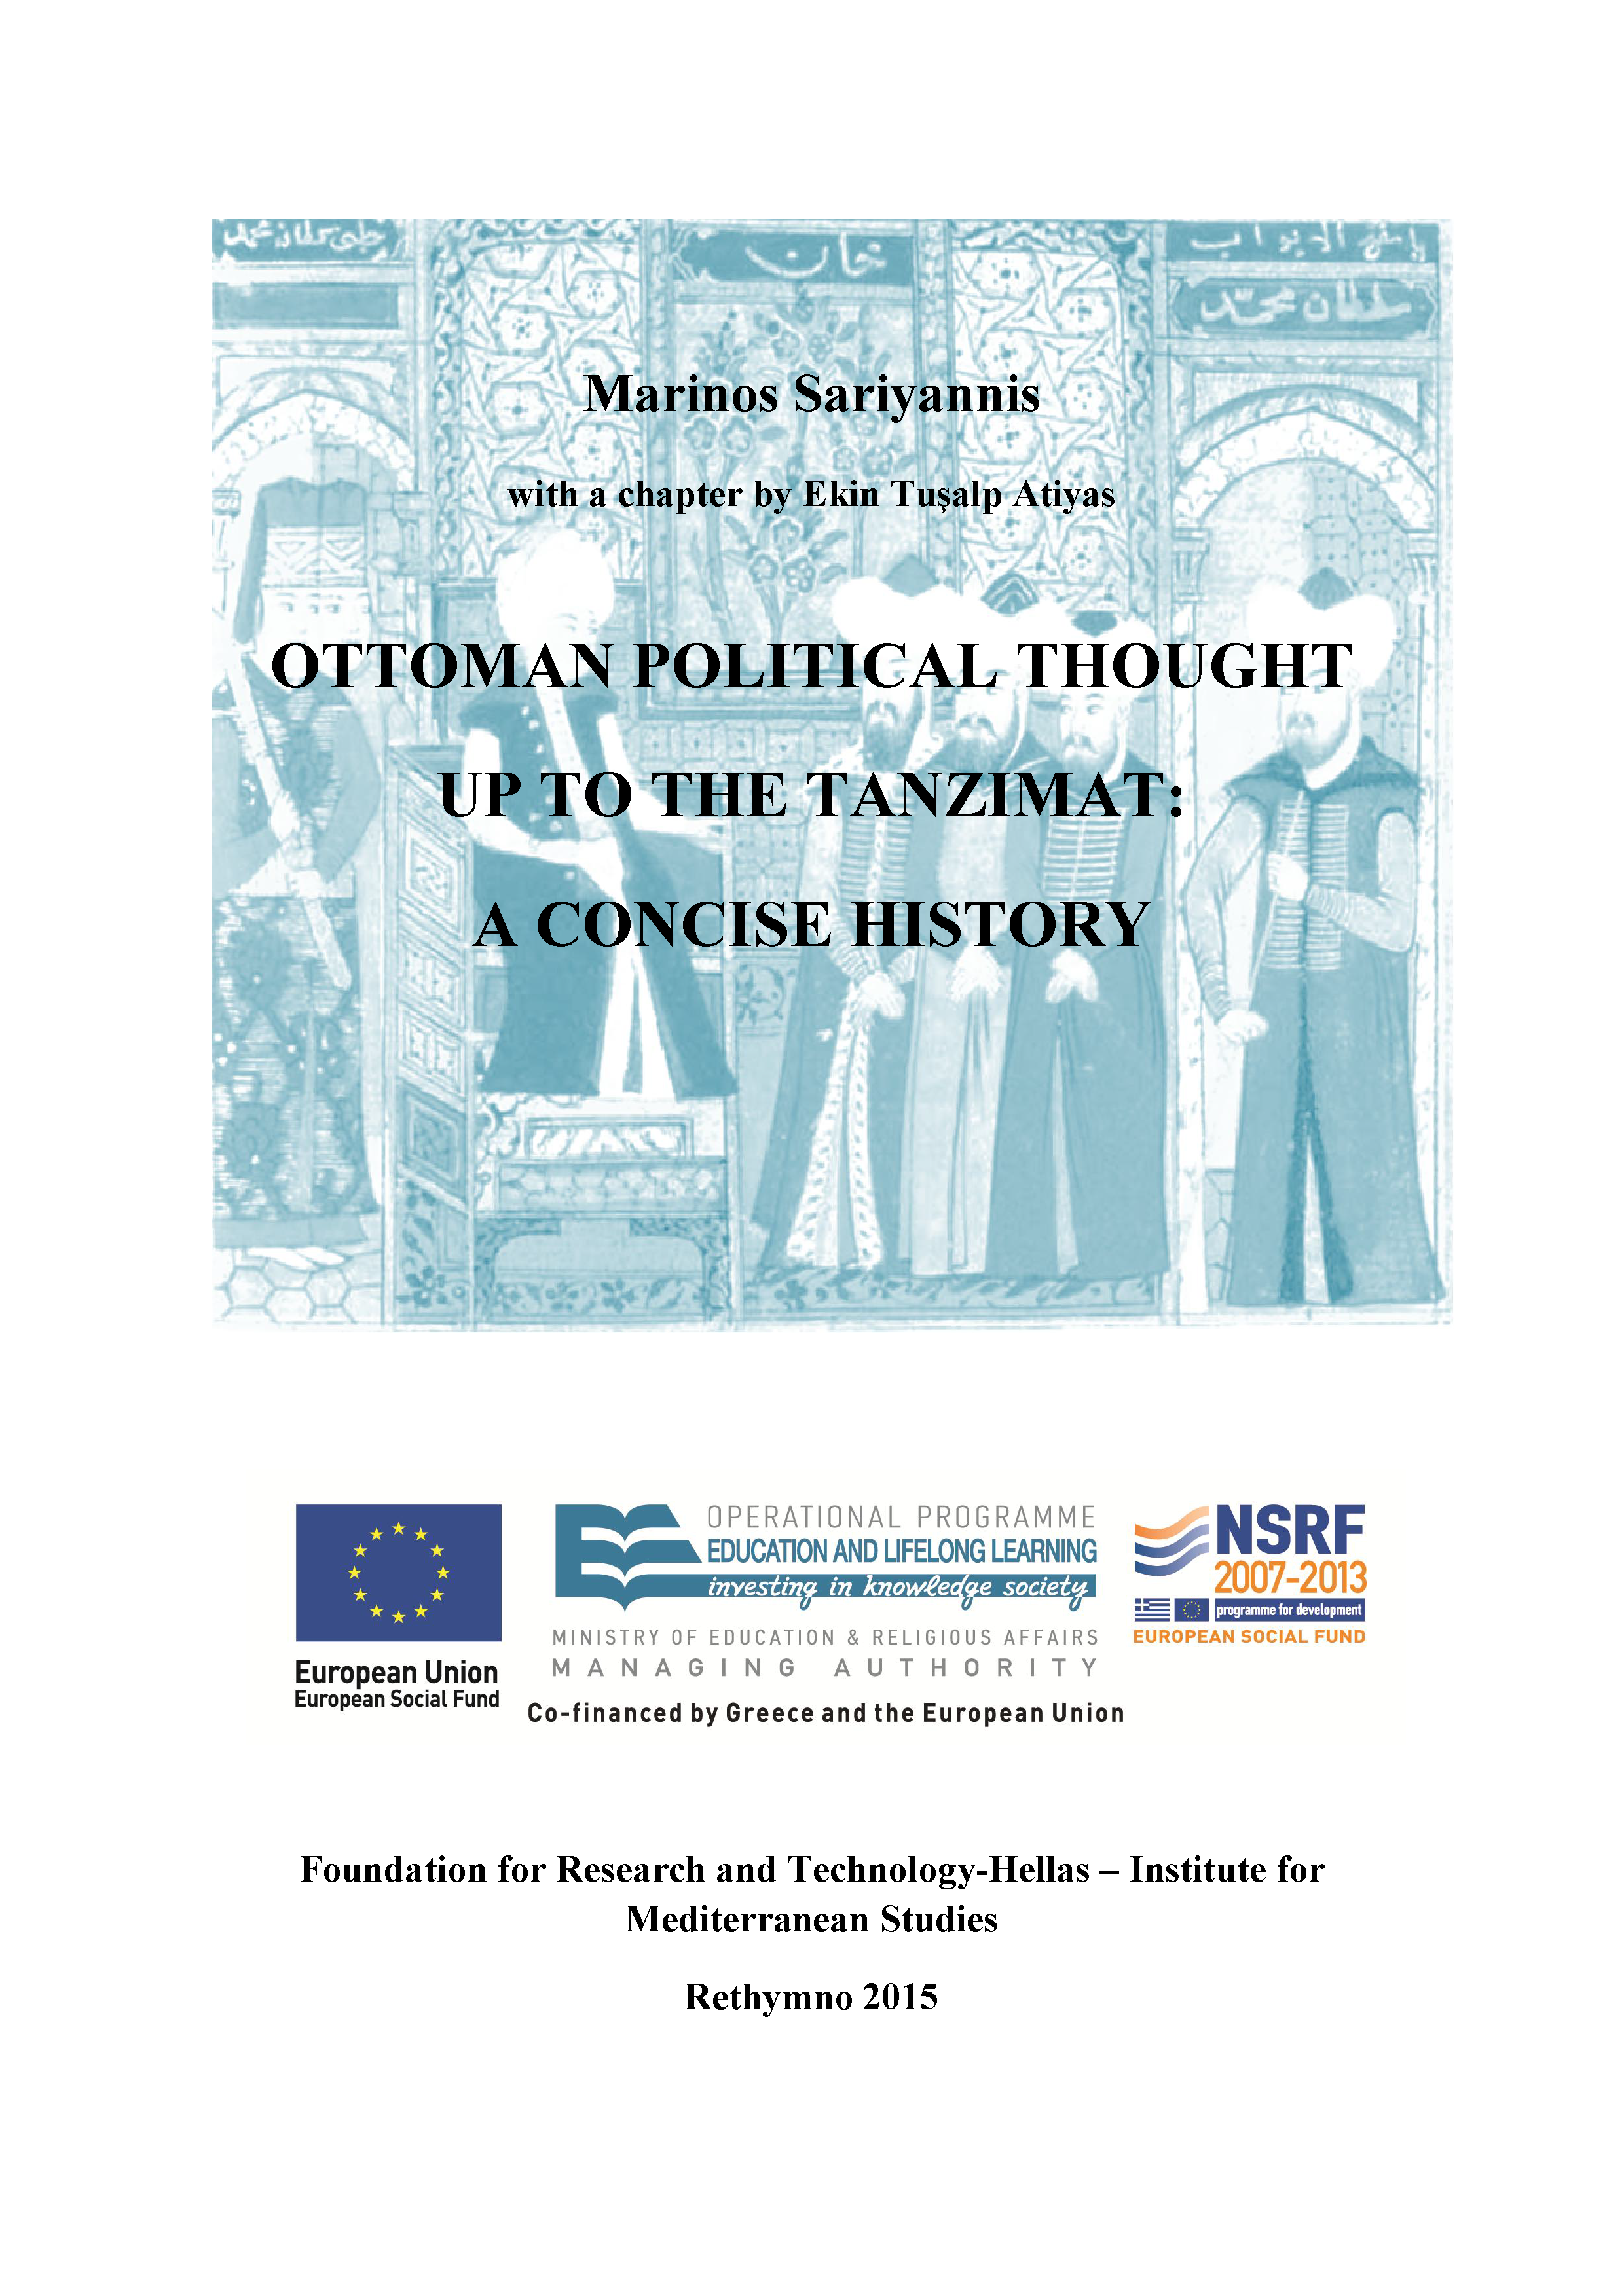 Ottoman Political Thought up to the Tanzimat: A Concise History